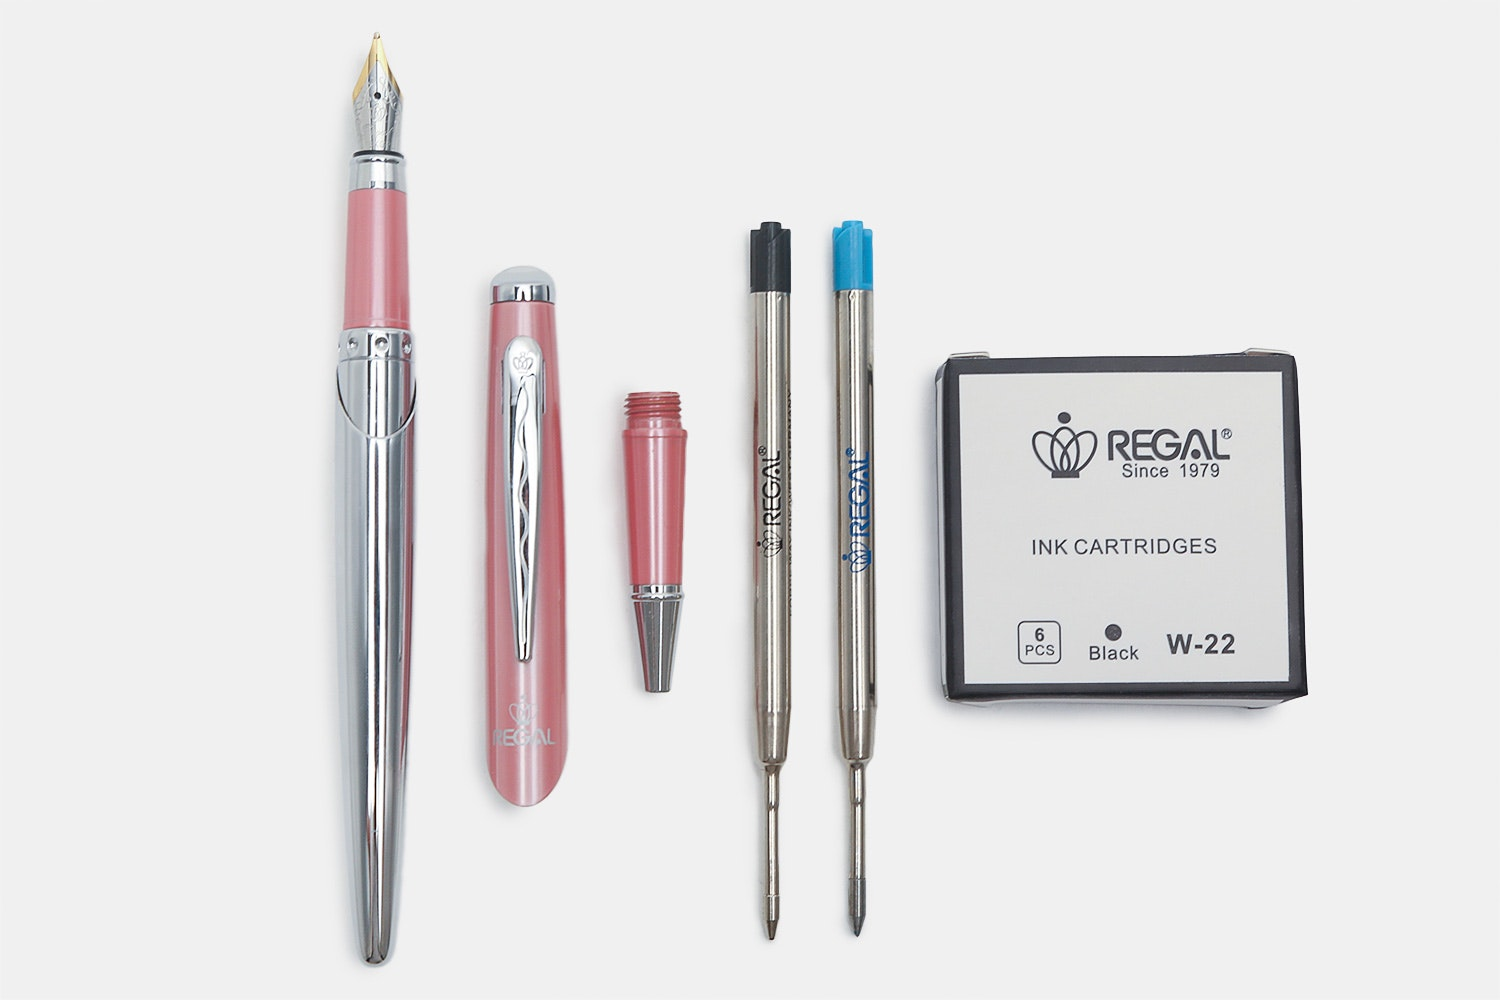 Three-in-one Pen in French Rose